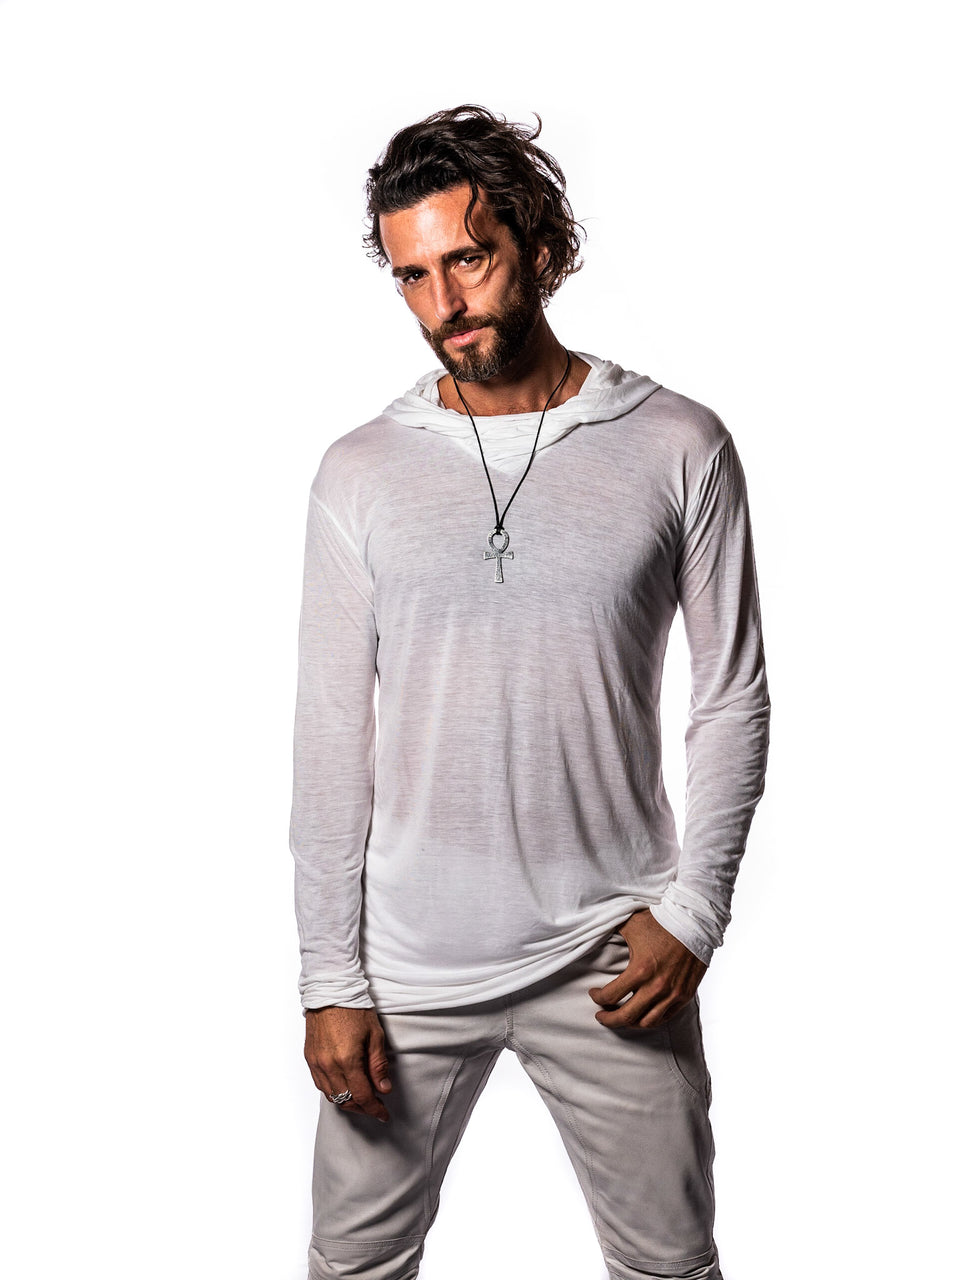 Long Sleeve V-Neck Shirt with Hood - Illuminated W